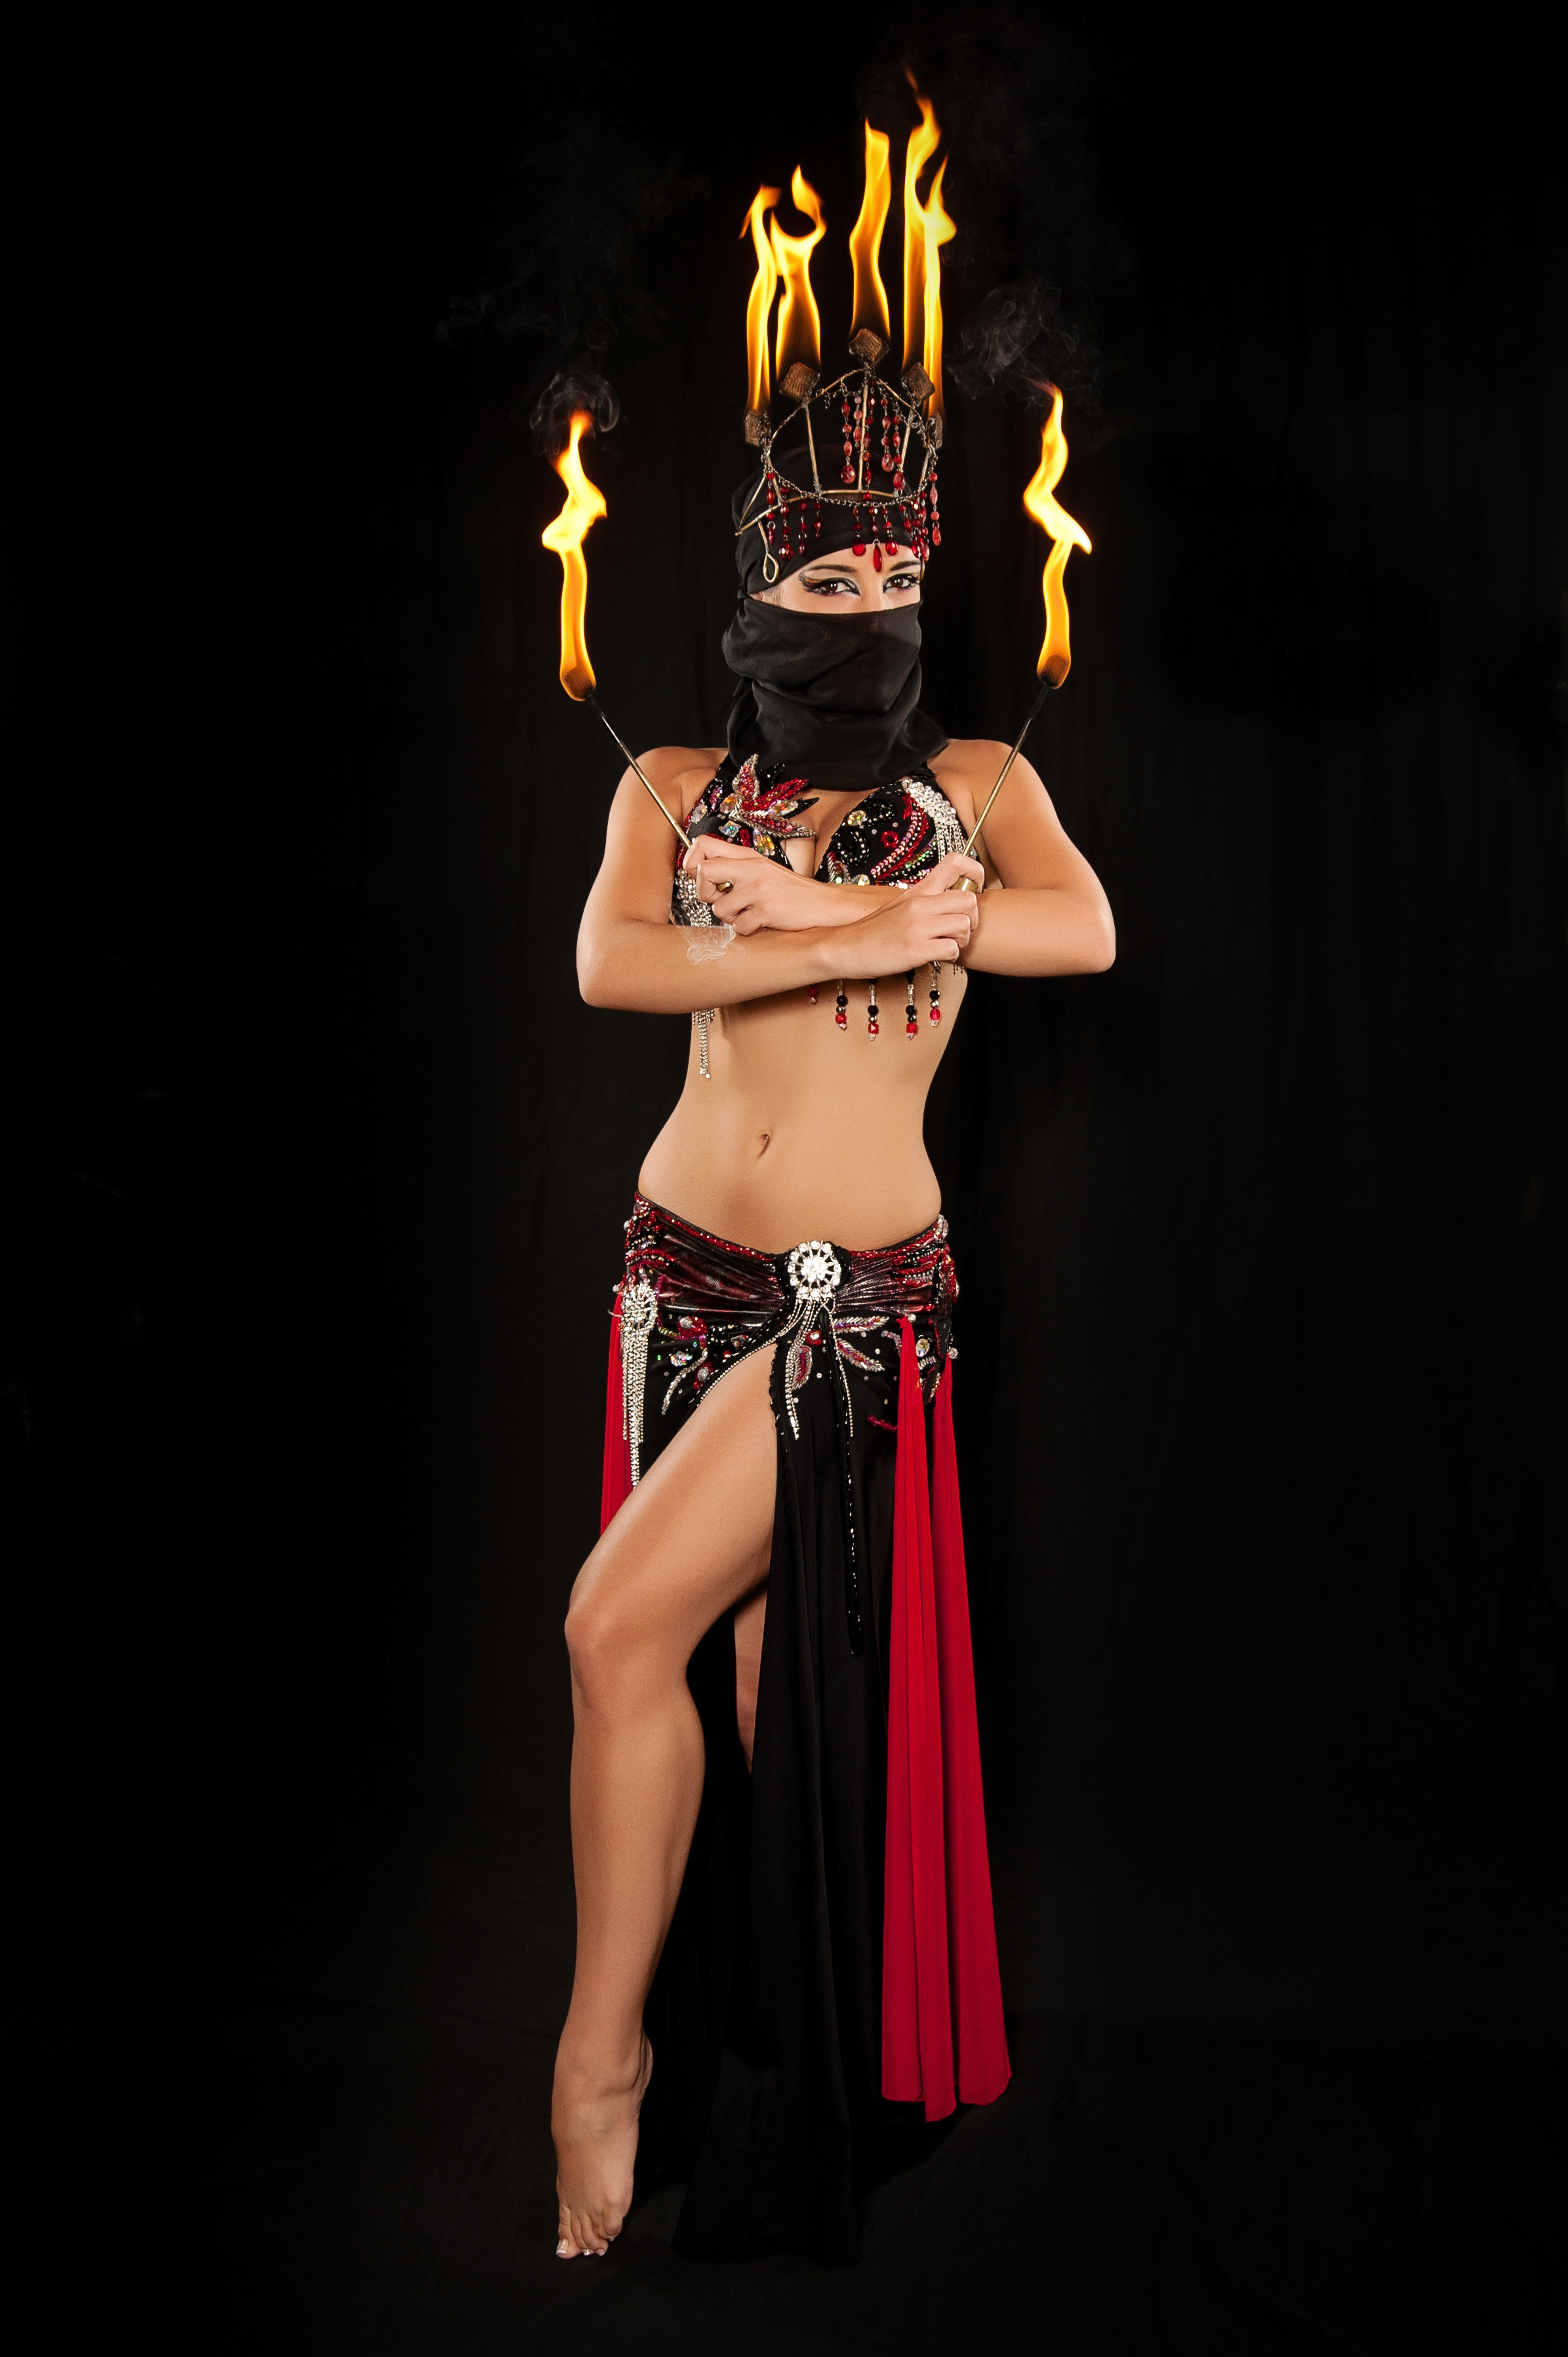 fire crown fire fingers fire dancer belly dancer